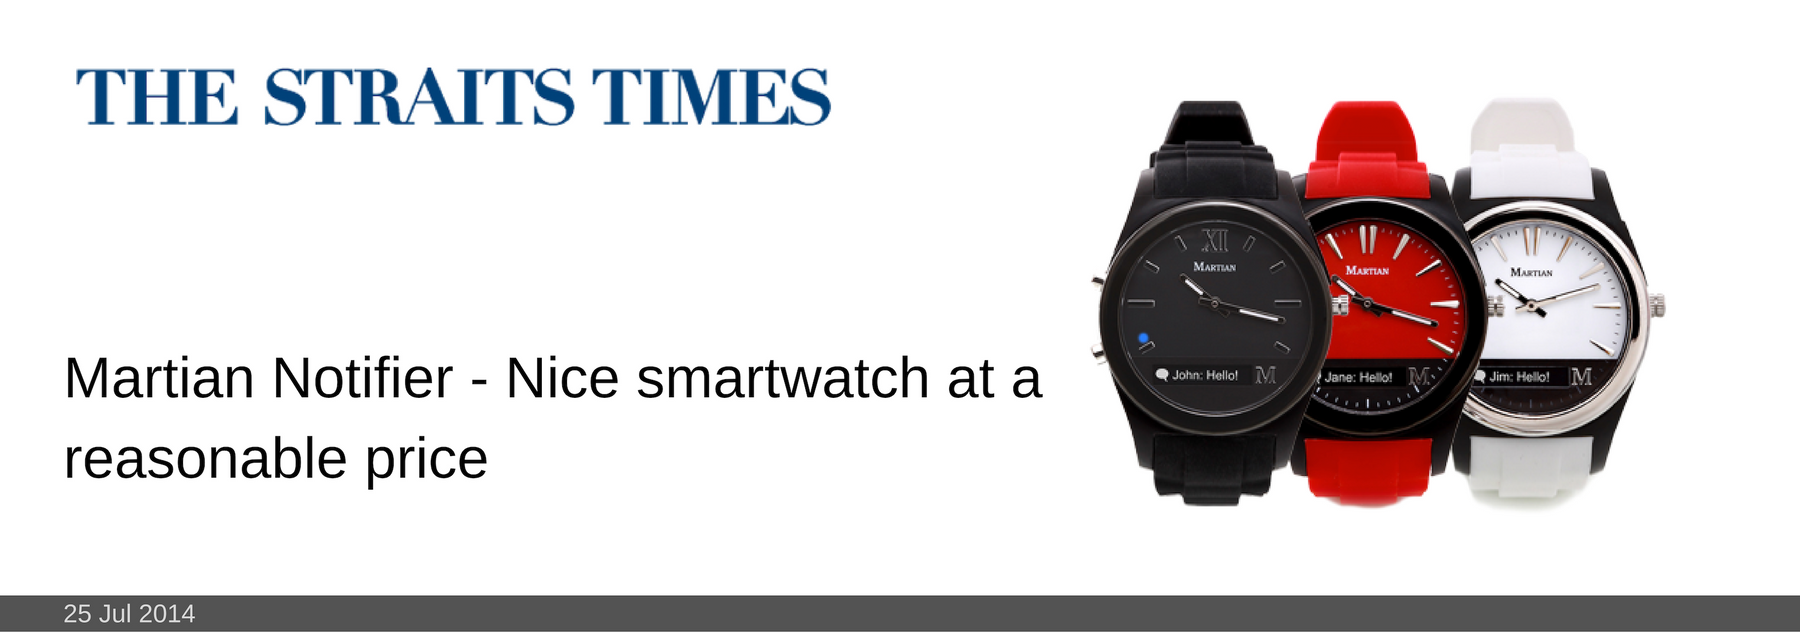 25 JUL 2014: Martian Notifier - Nice smartwatch at a reasonable price